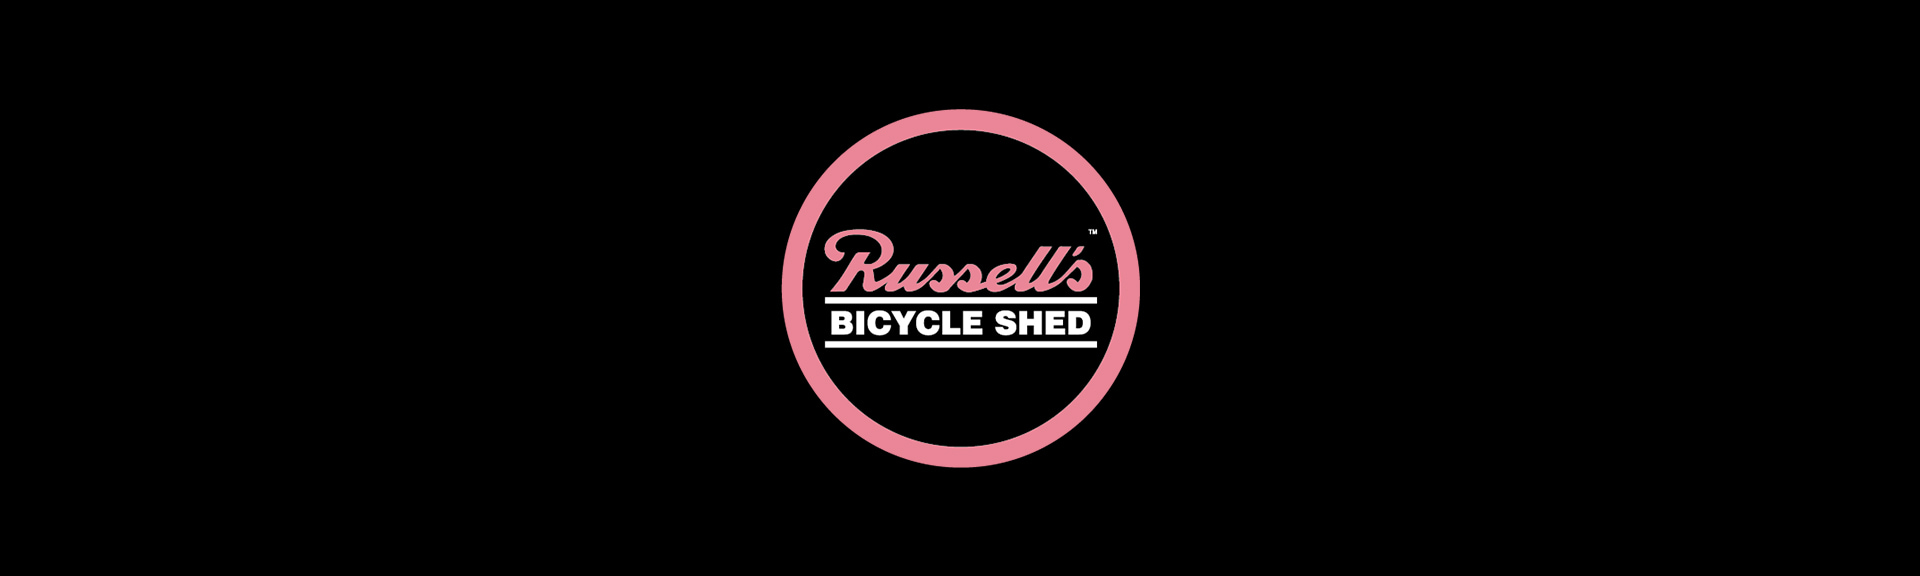 Russells Bicycle Shed